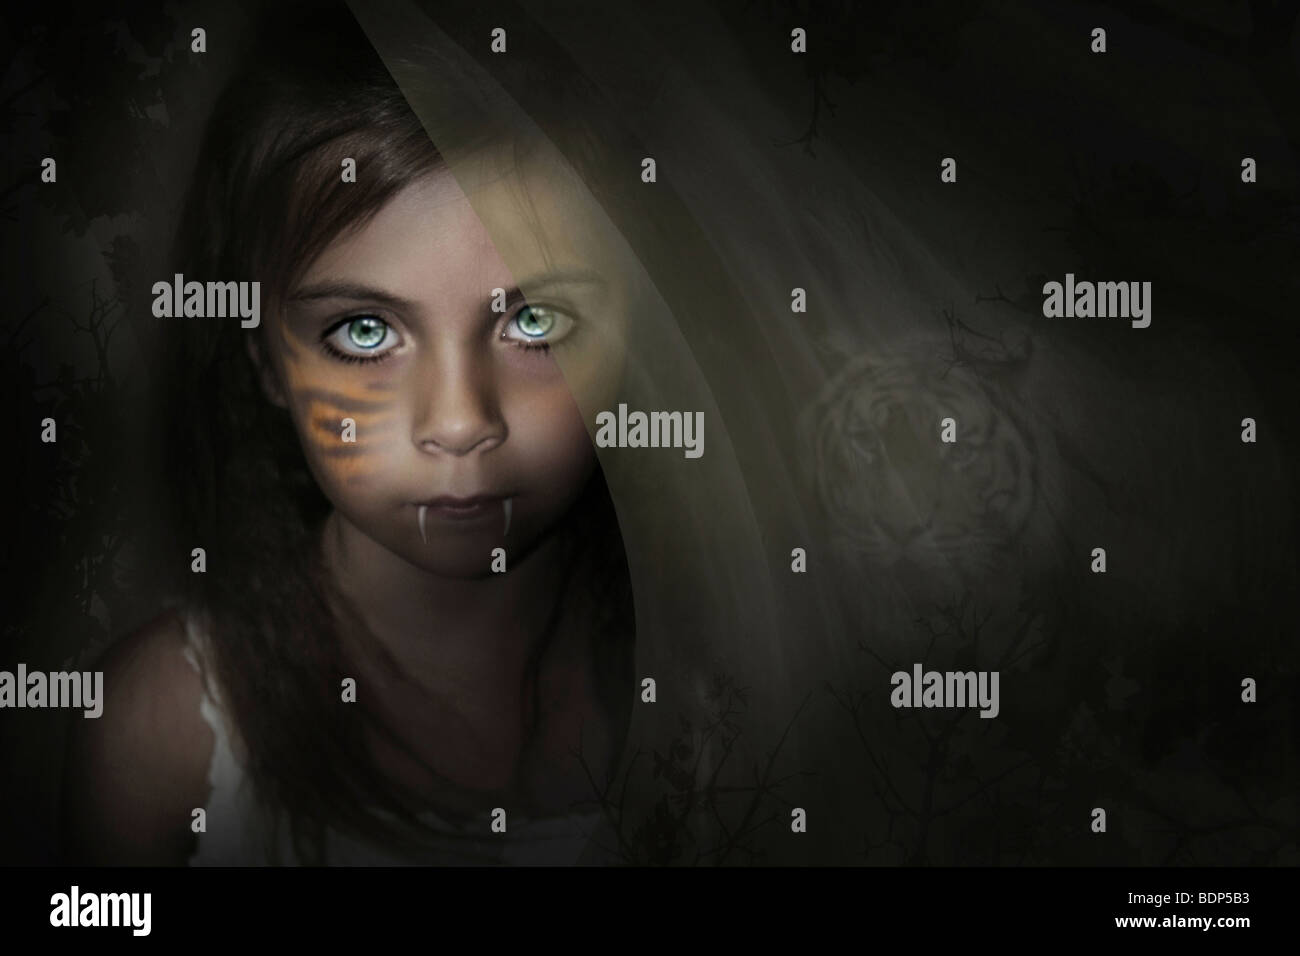 Fantasy image with young child with fangs and a tiger in the background behind her. - Stock Image